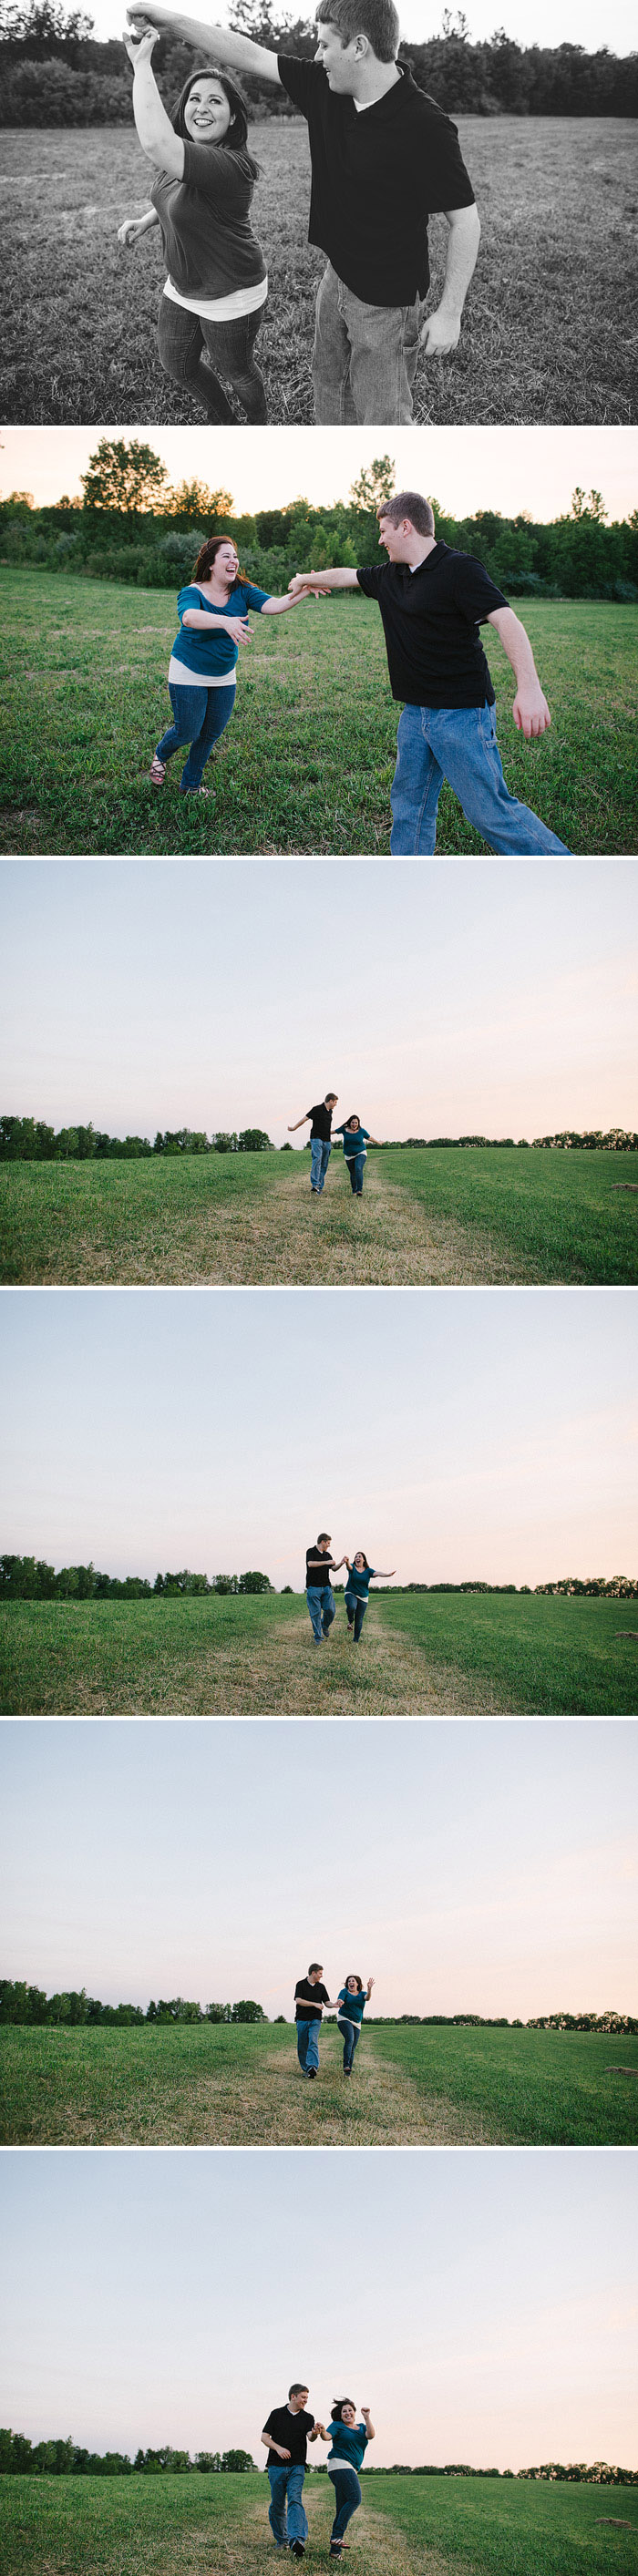 Couple dancing in a field.